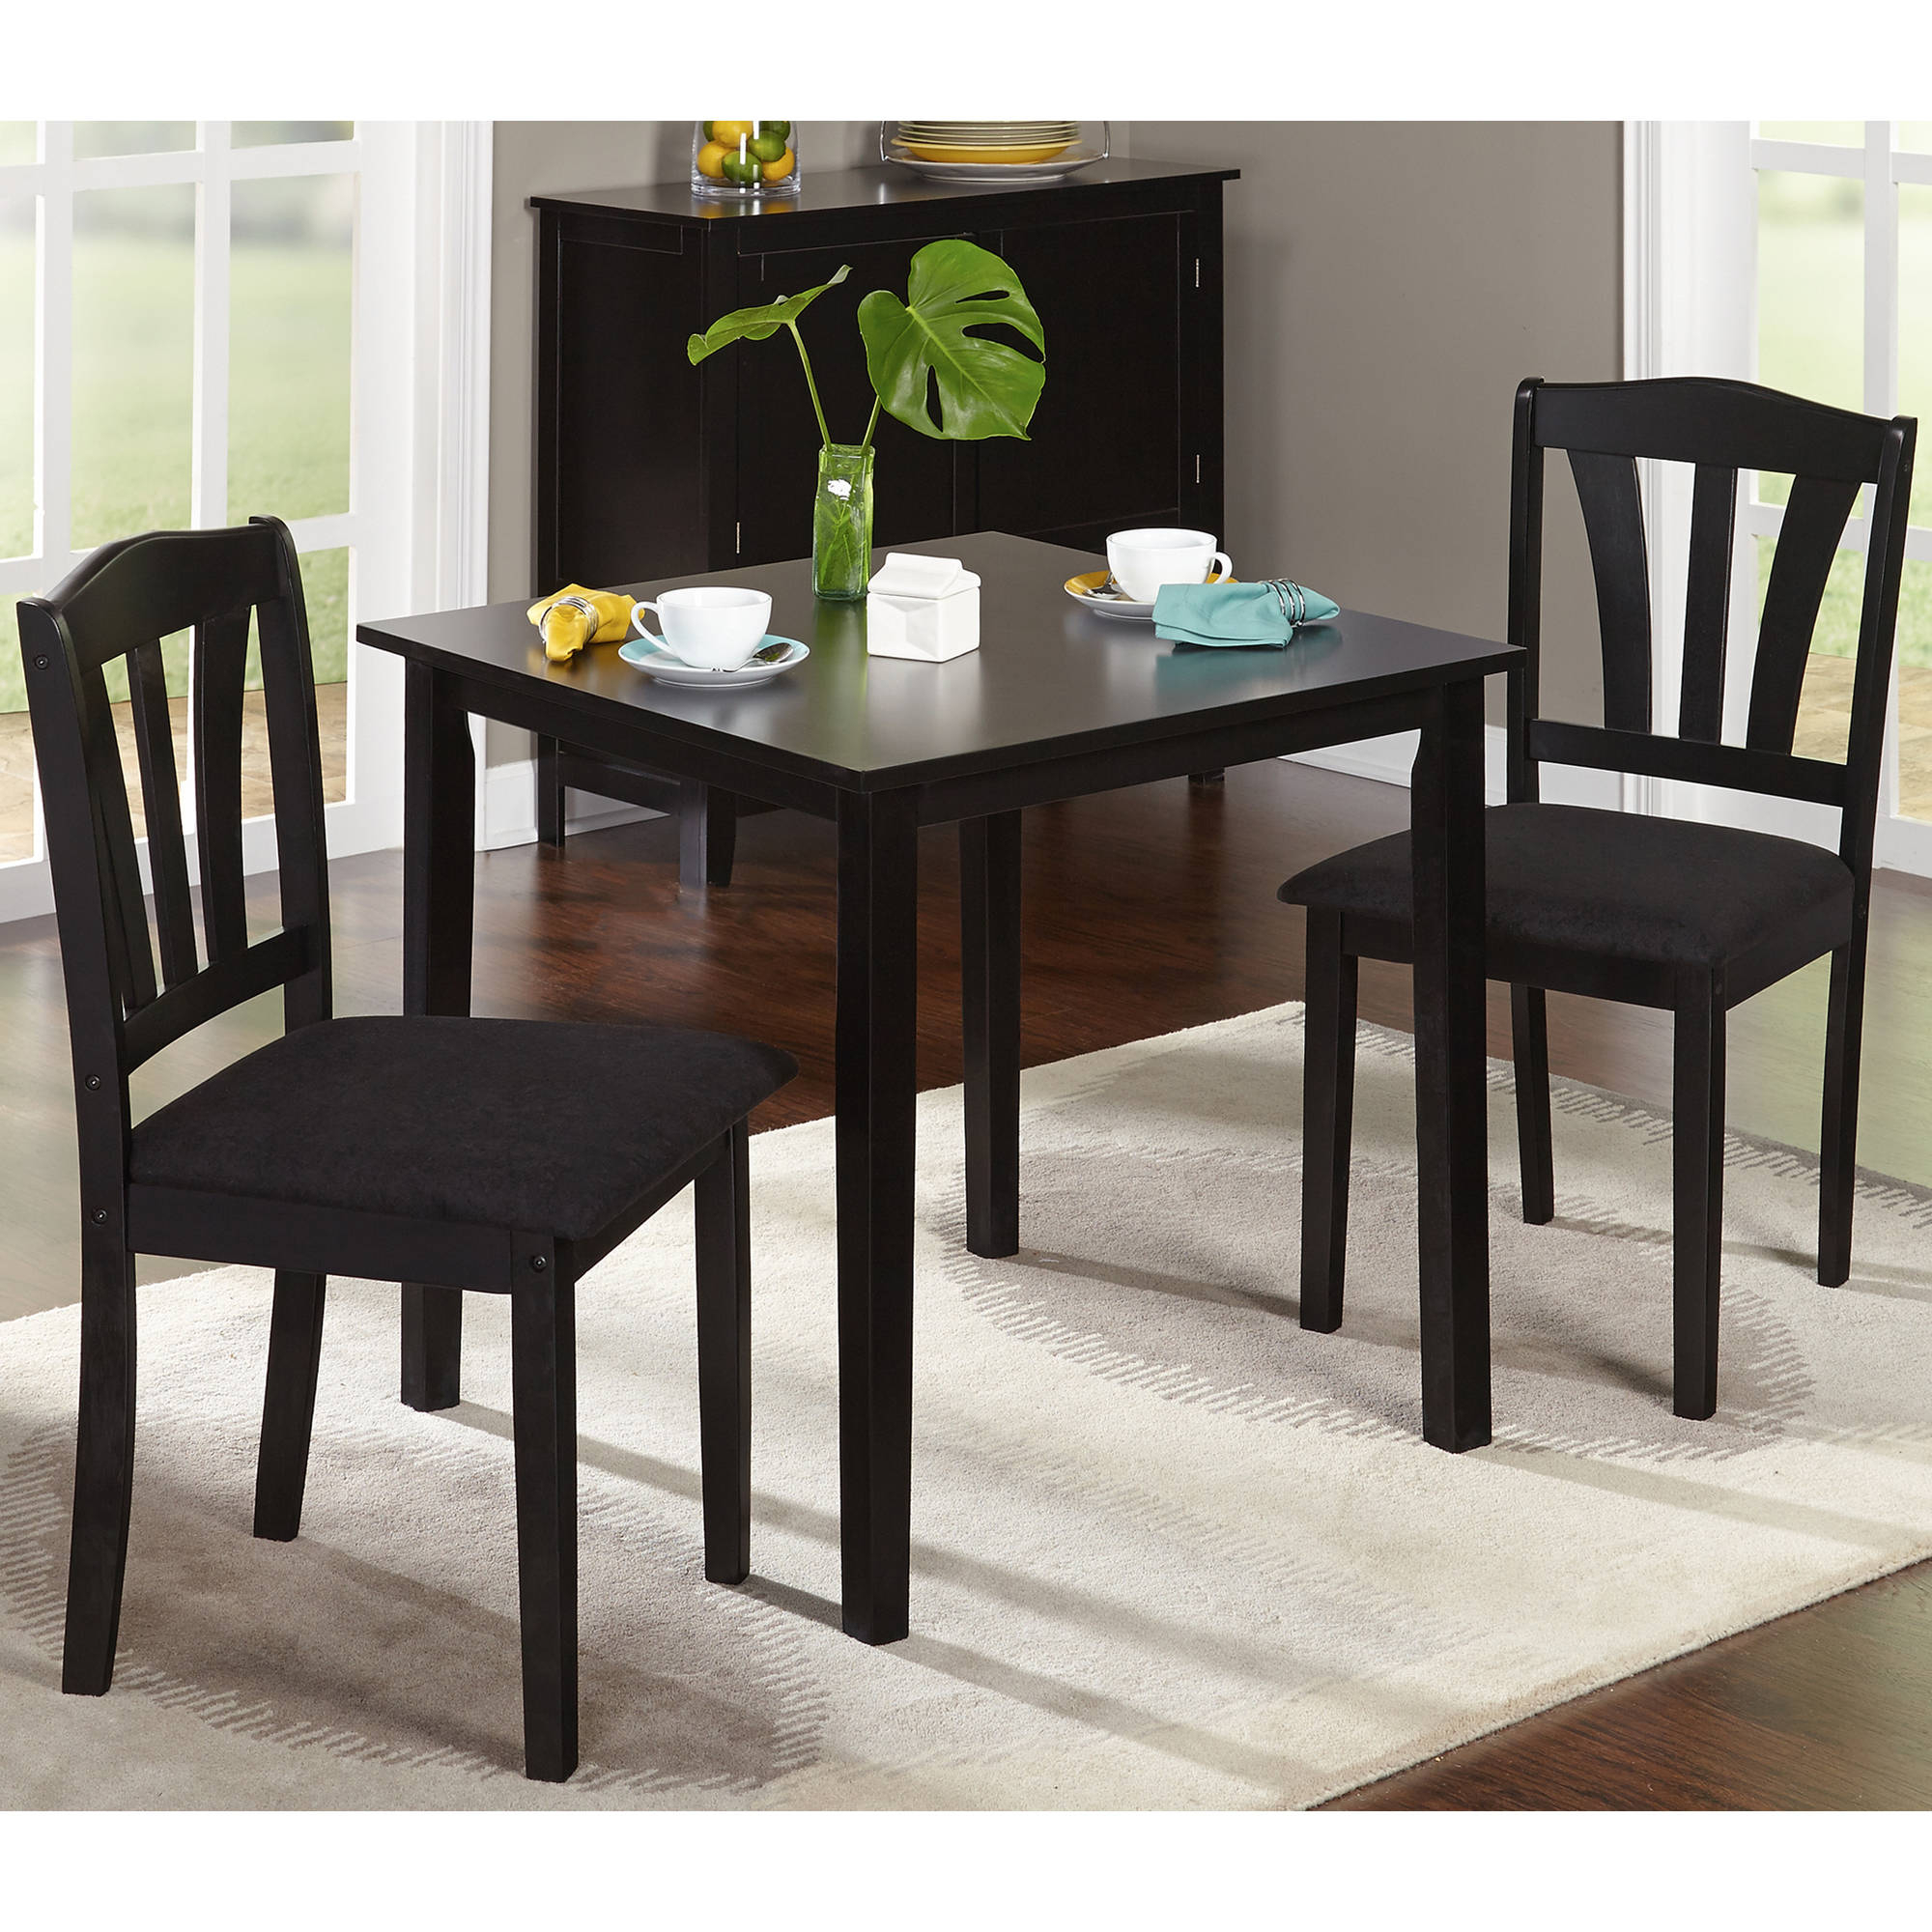 Fashionable Metropolitan 3 Piece Dining Set, Multiple Finishes In Rossiter 3 Piece Dining Sets (View 4 of 20)